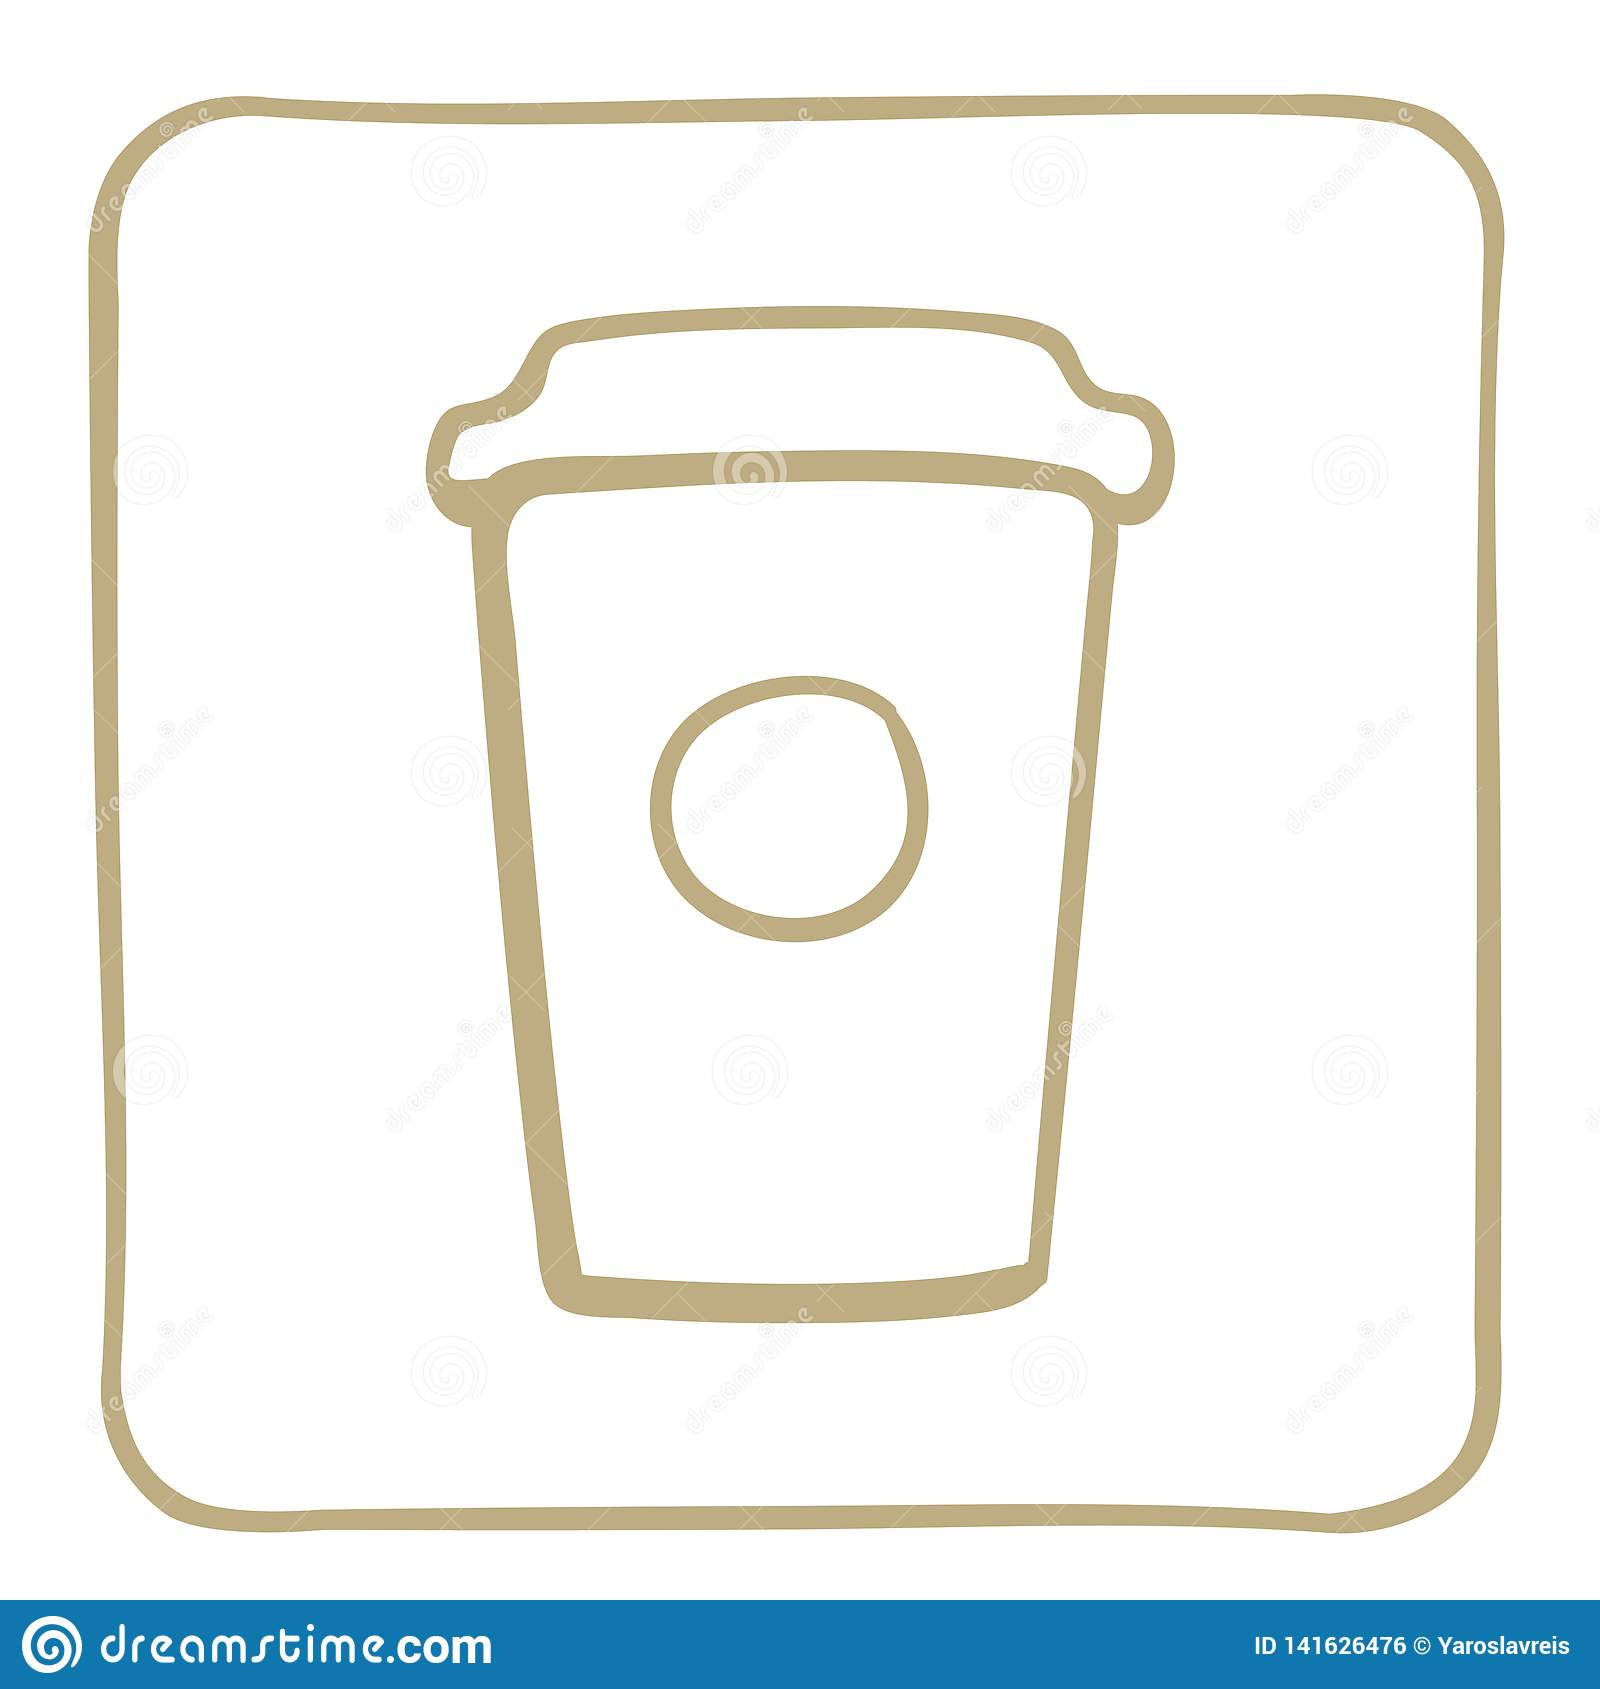 Coffee in a cardboard cup. Icon in a light brown frame. Vector graphics.